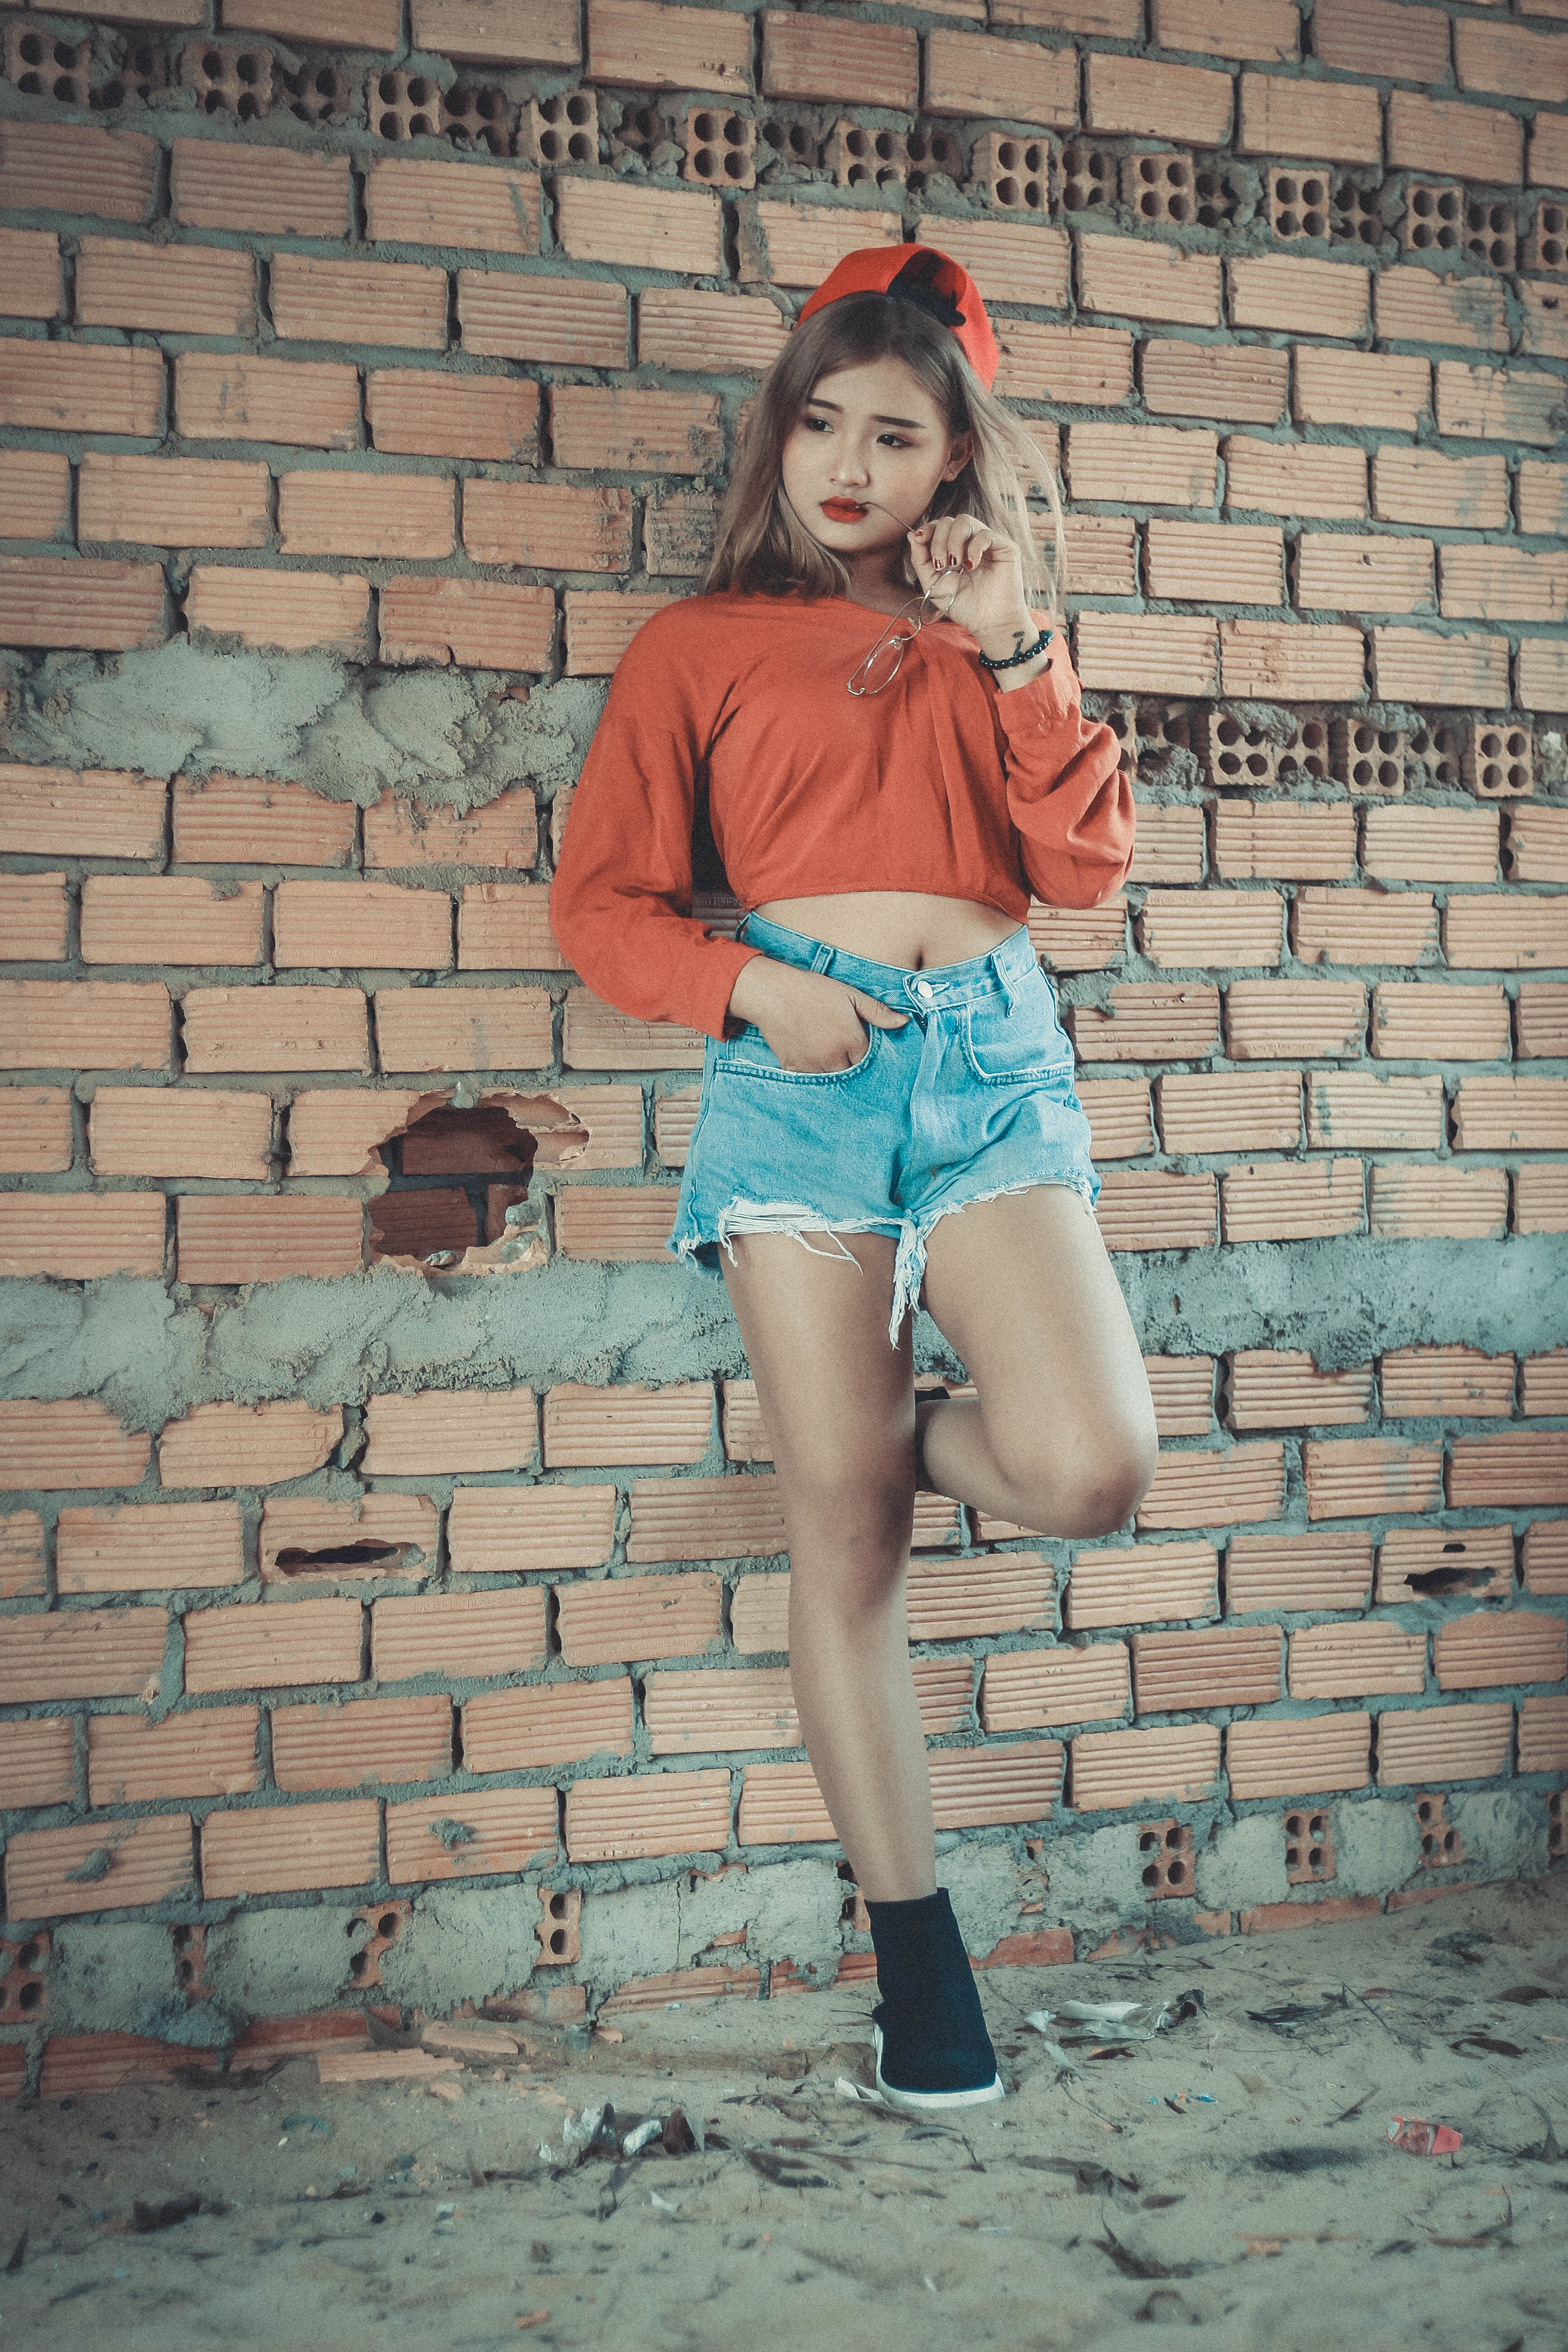 Photo of Woman Wearing Orange Crop-top Near Brown Concrete Brick Wall, Person, Young, Woman, Wear, HQ Photo